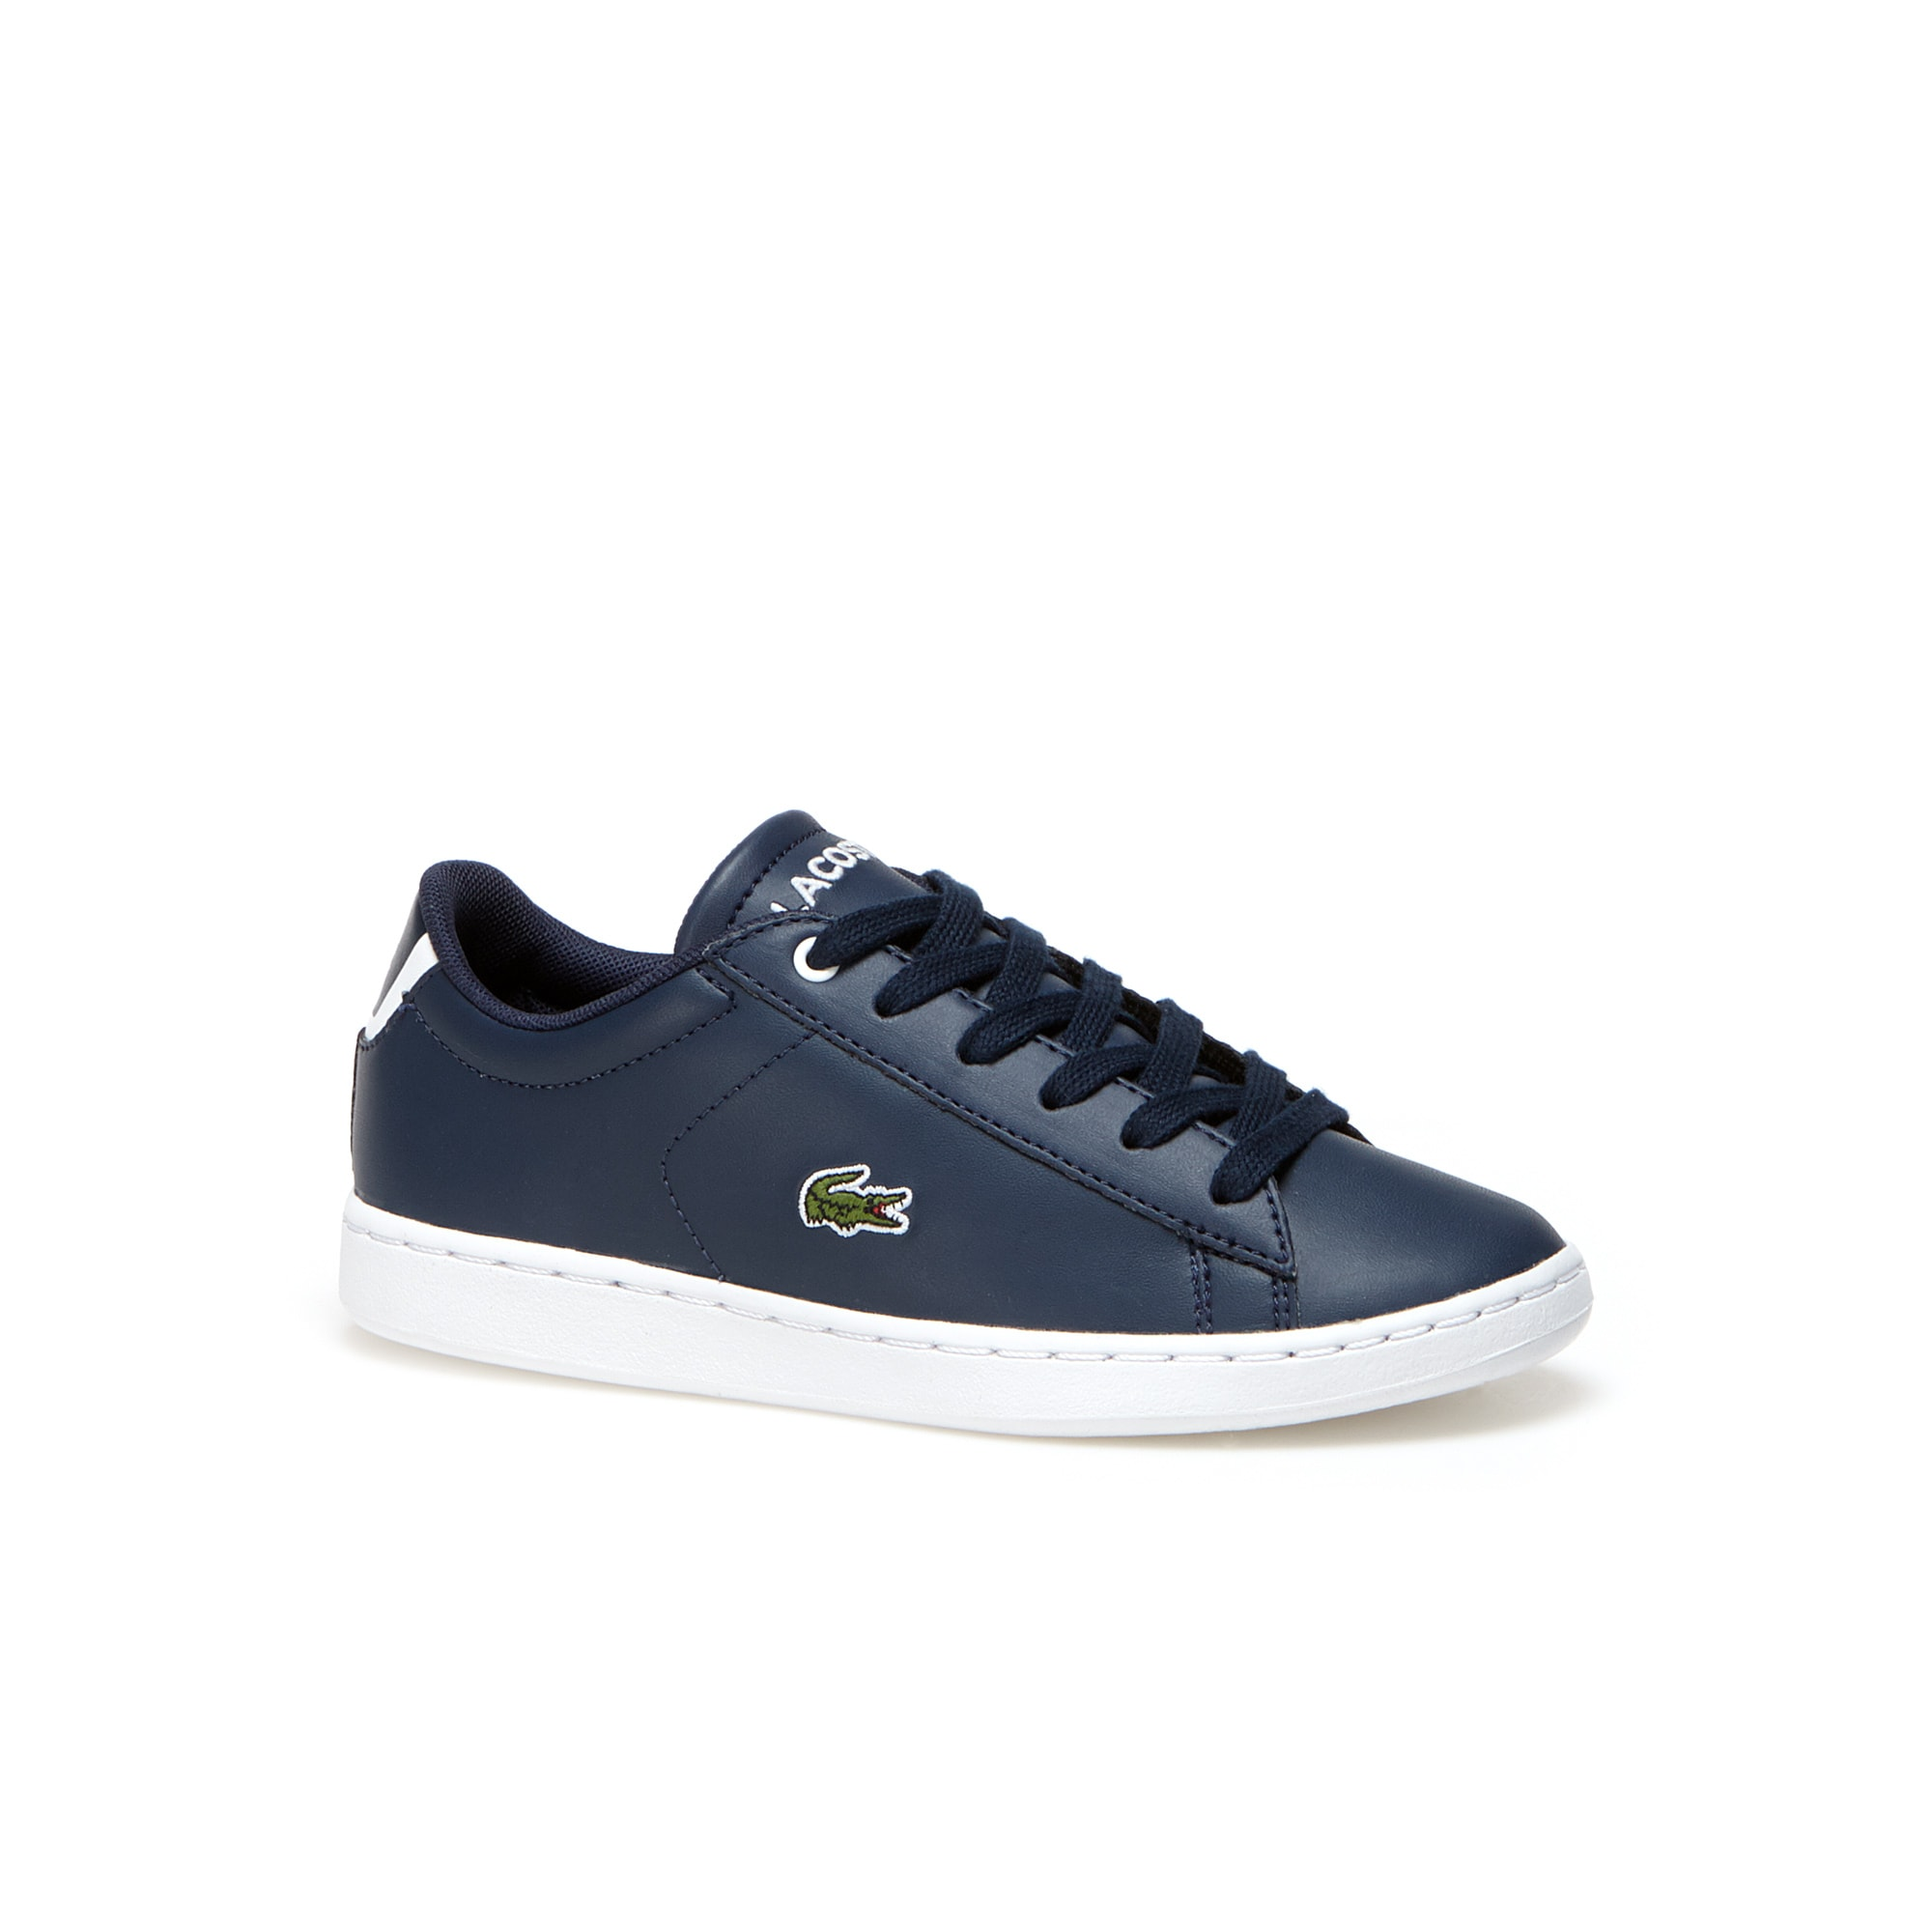 Children's Carnaby Evo BL Synthetic Trainers